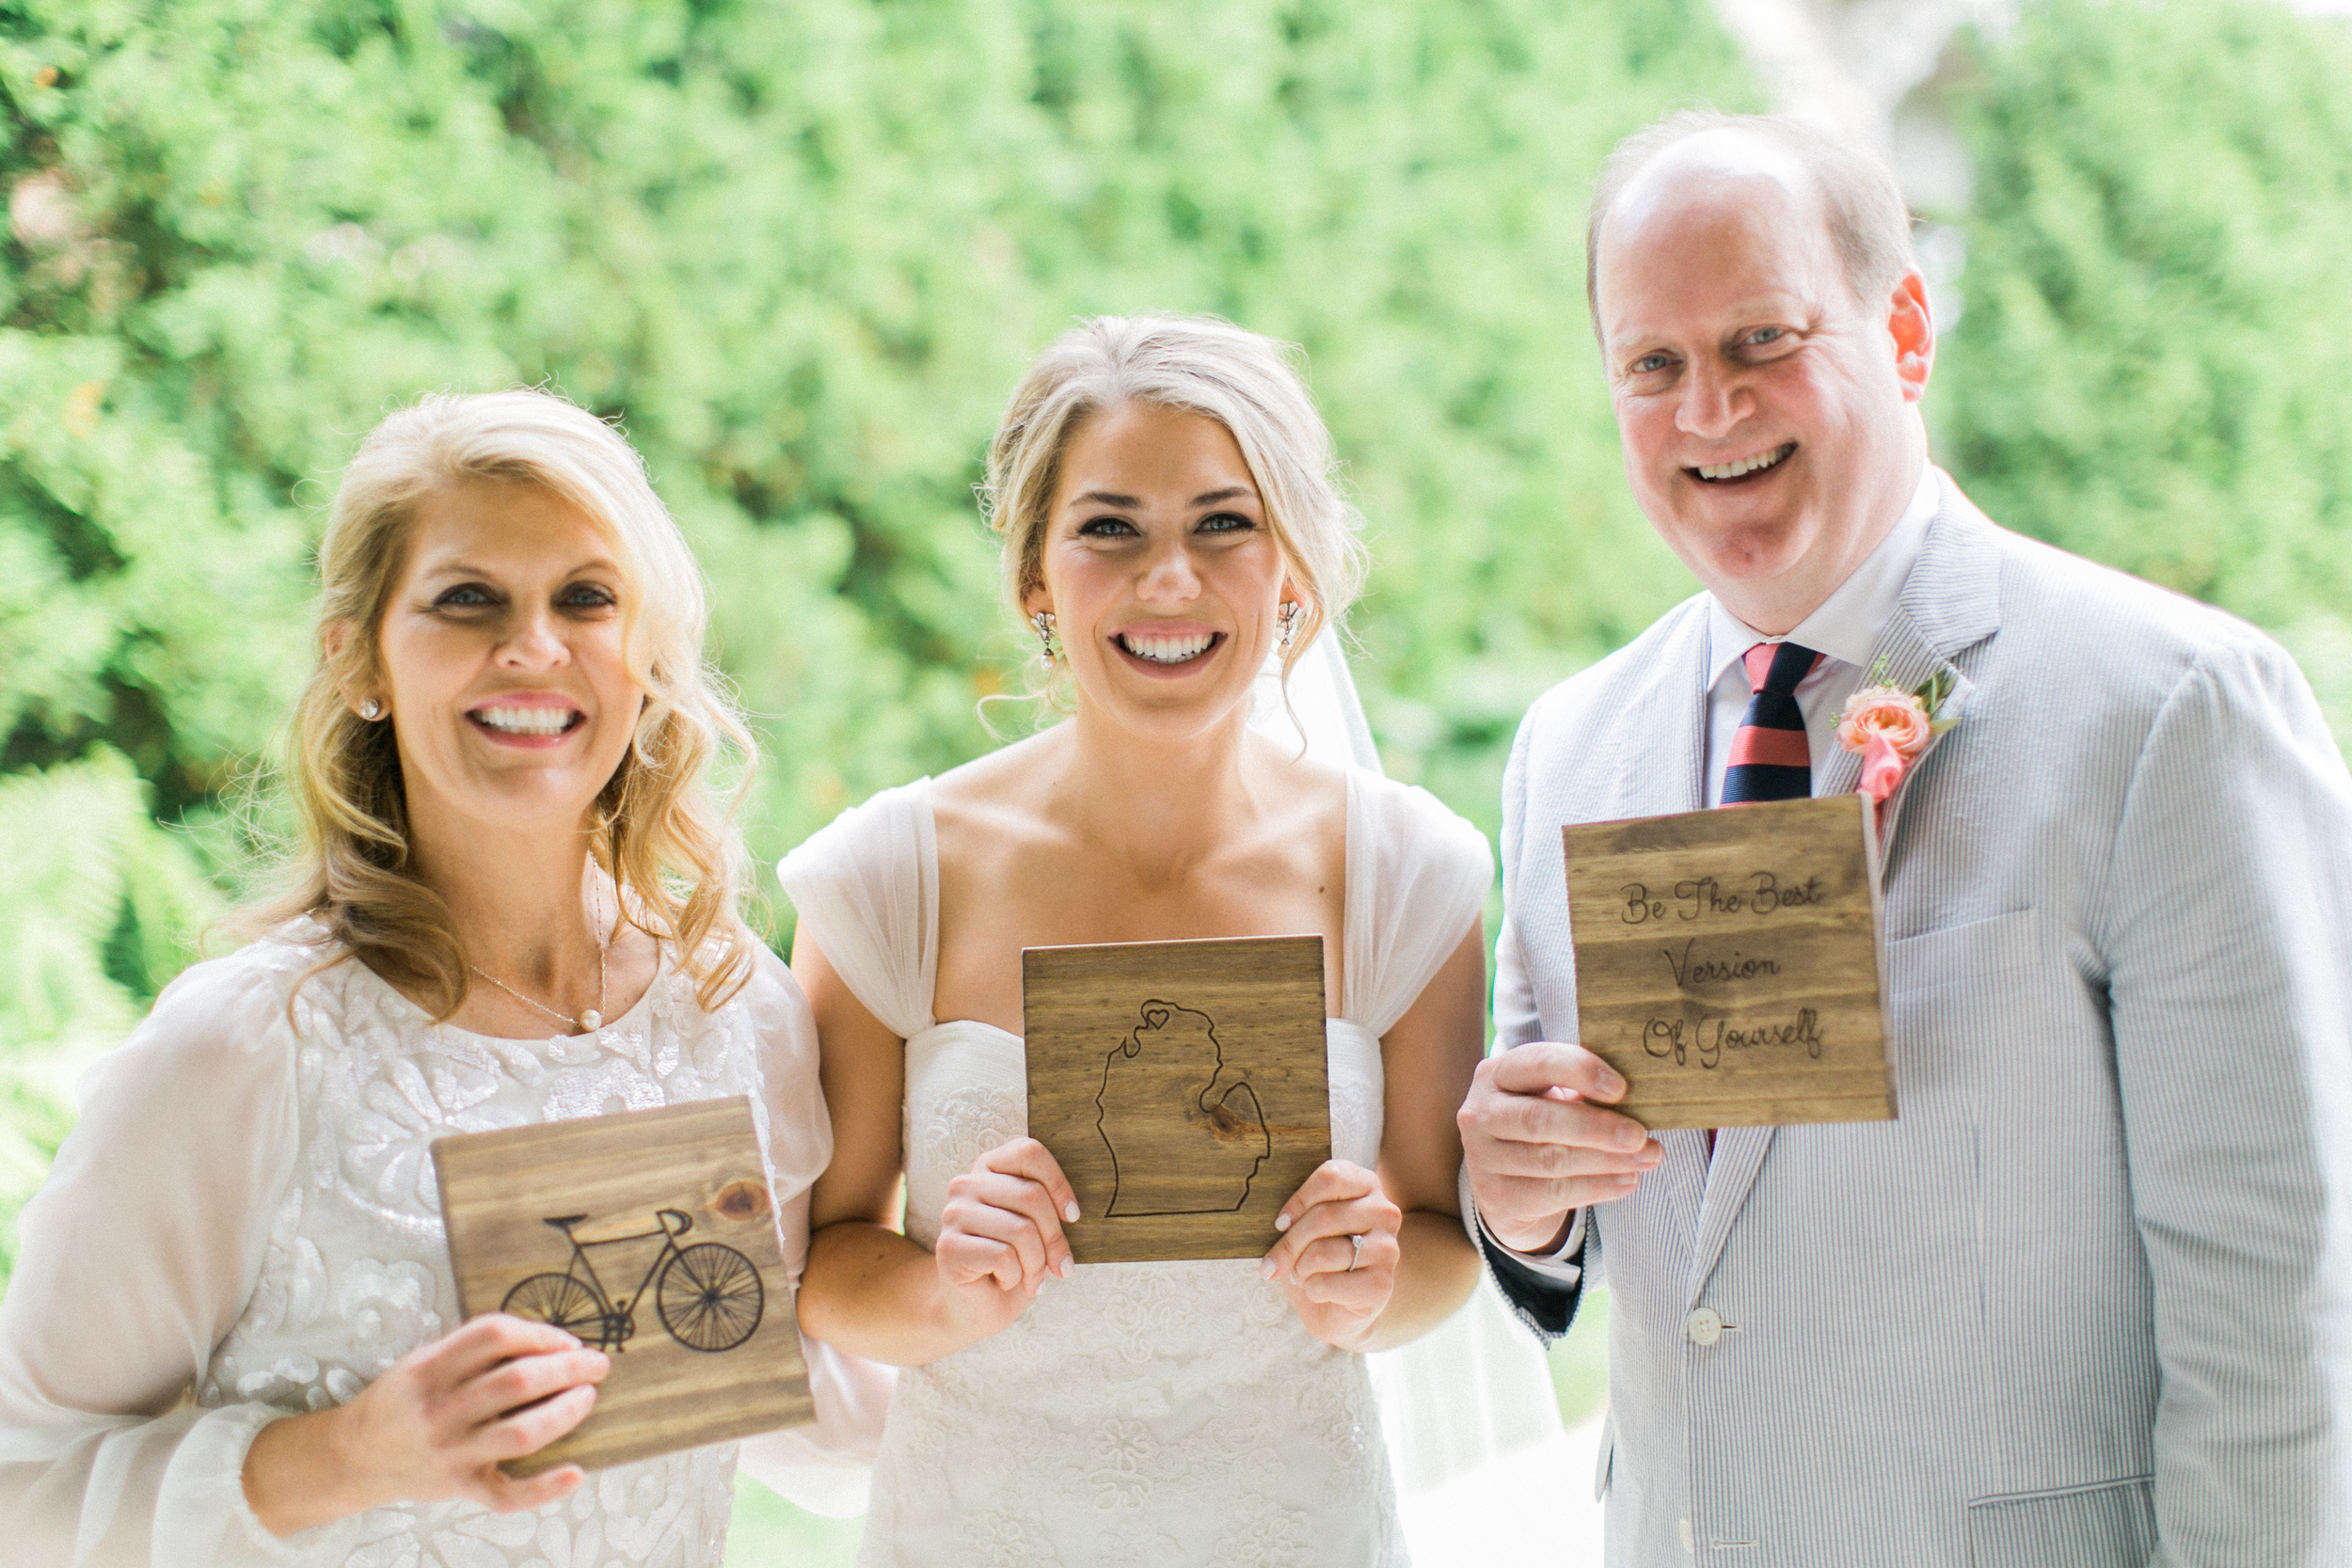 """For my wedding, I gifted my parents with three plaques made of Michigan wood, the third reading, """"Be the Best Version of Yourself."""""""